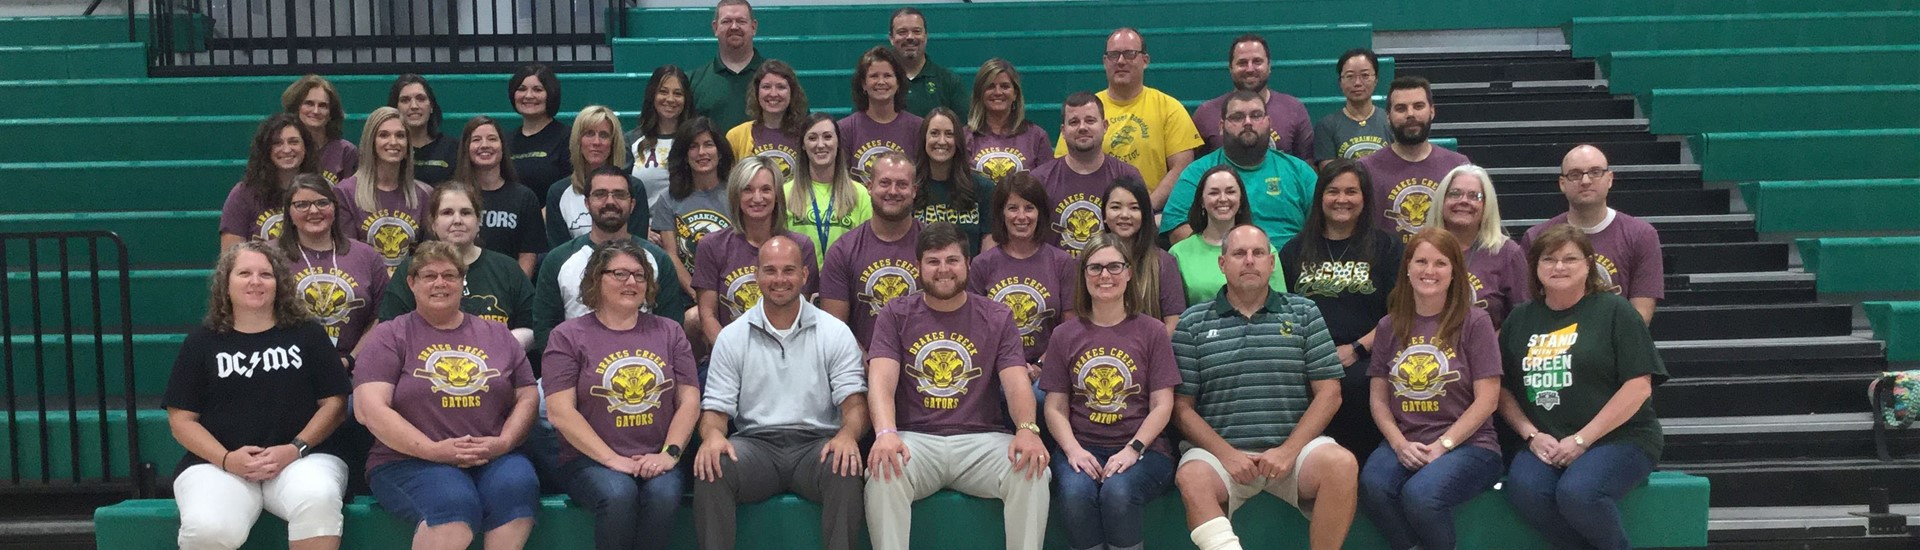 DCMS Faculty and Administration 2018-2019